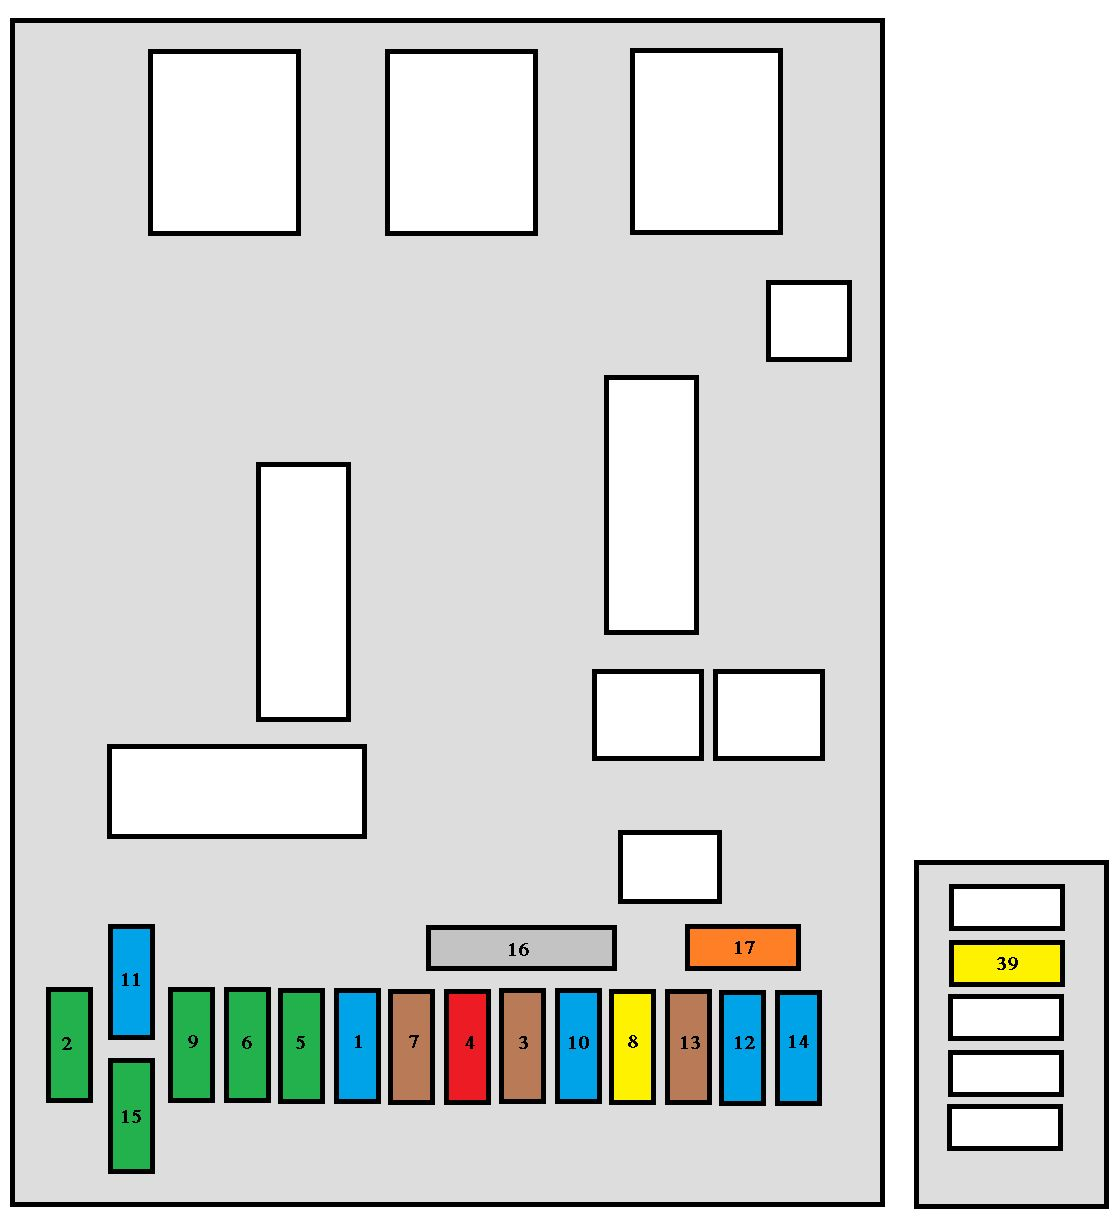 peugeot 1007 fuse box diagram peugeot fuse box 207 - wiring diagram peugeot 106 fuse box diagram